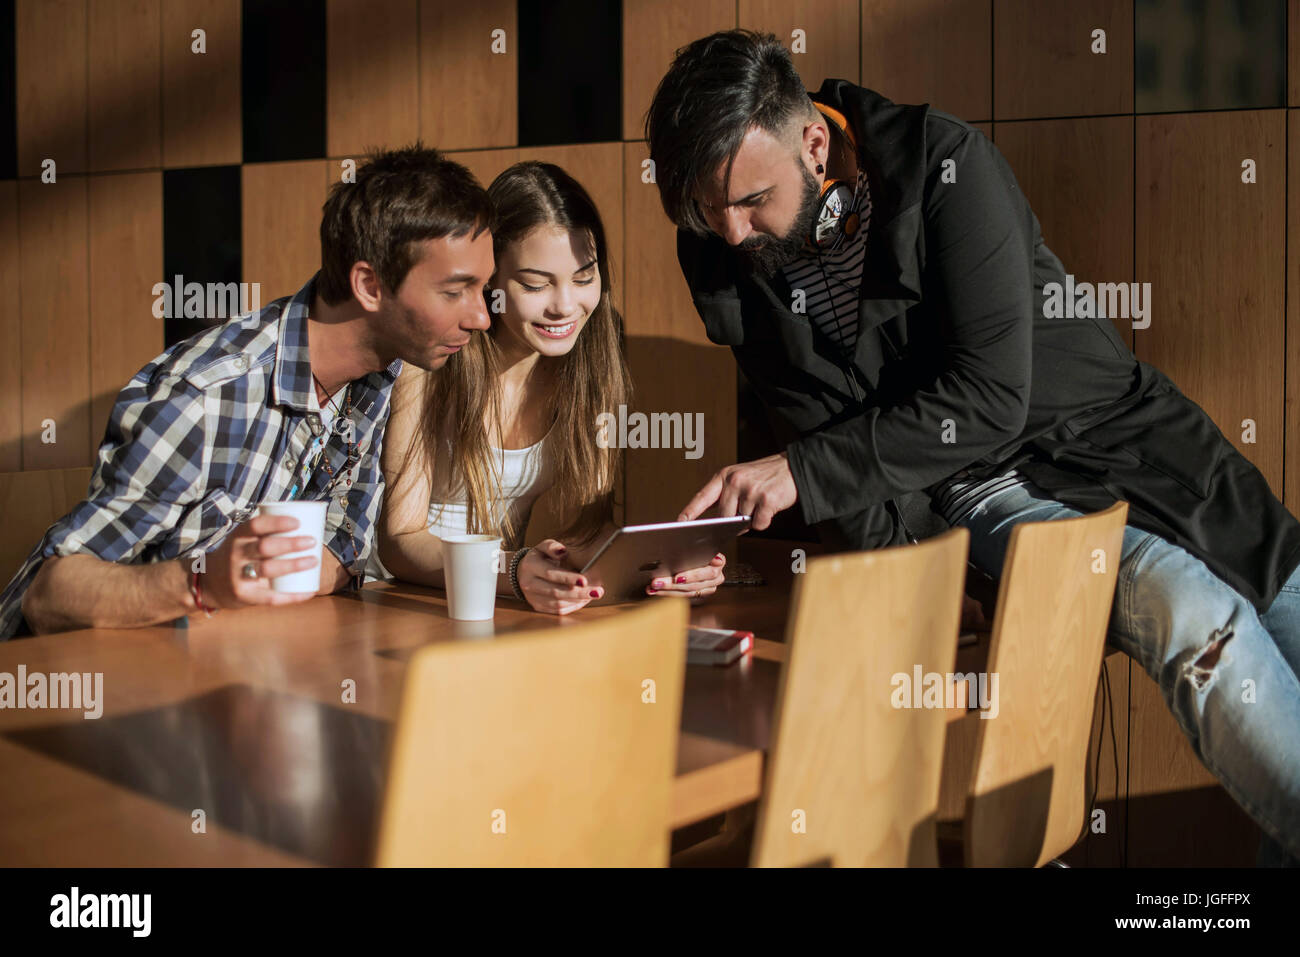 Group of friends sitting in the room by the table and comunicate. - Stock Image